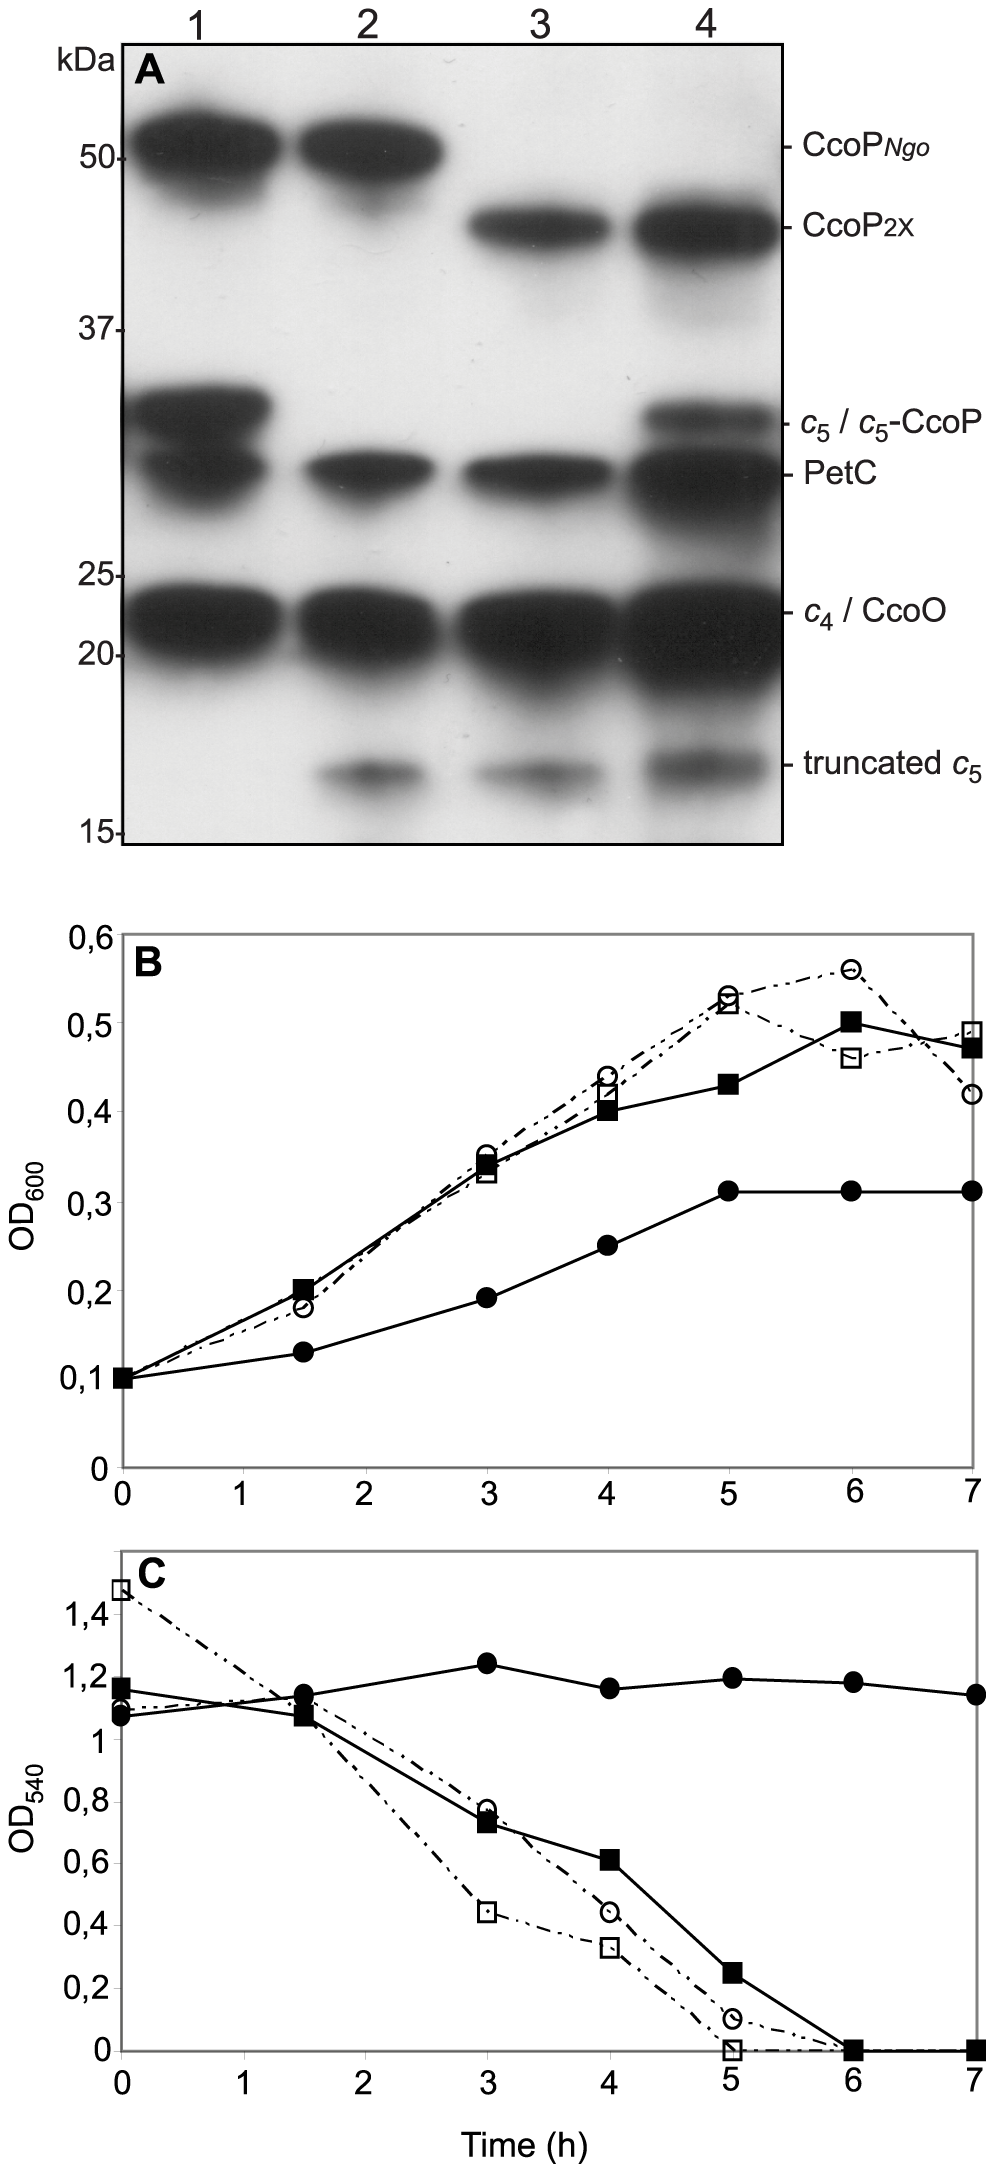 Ectopic expression of a <i>c</i><sub>5</sub>-CcoP hybrid protein complements a defect in nitrite-dependent, microaerobic growth in <i>N. gonorrhoeae</i>.